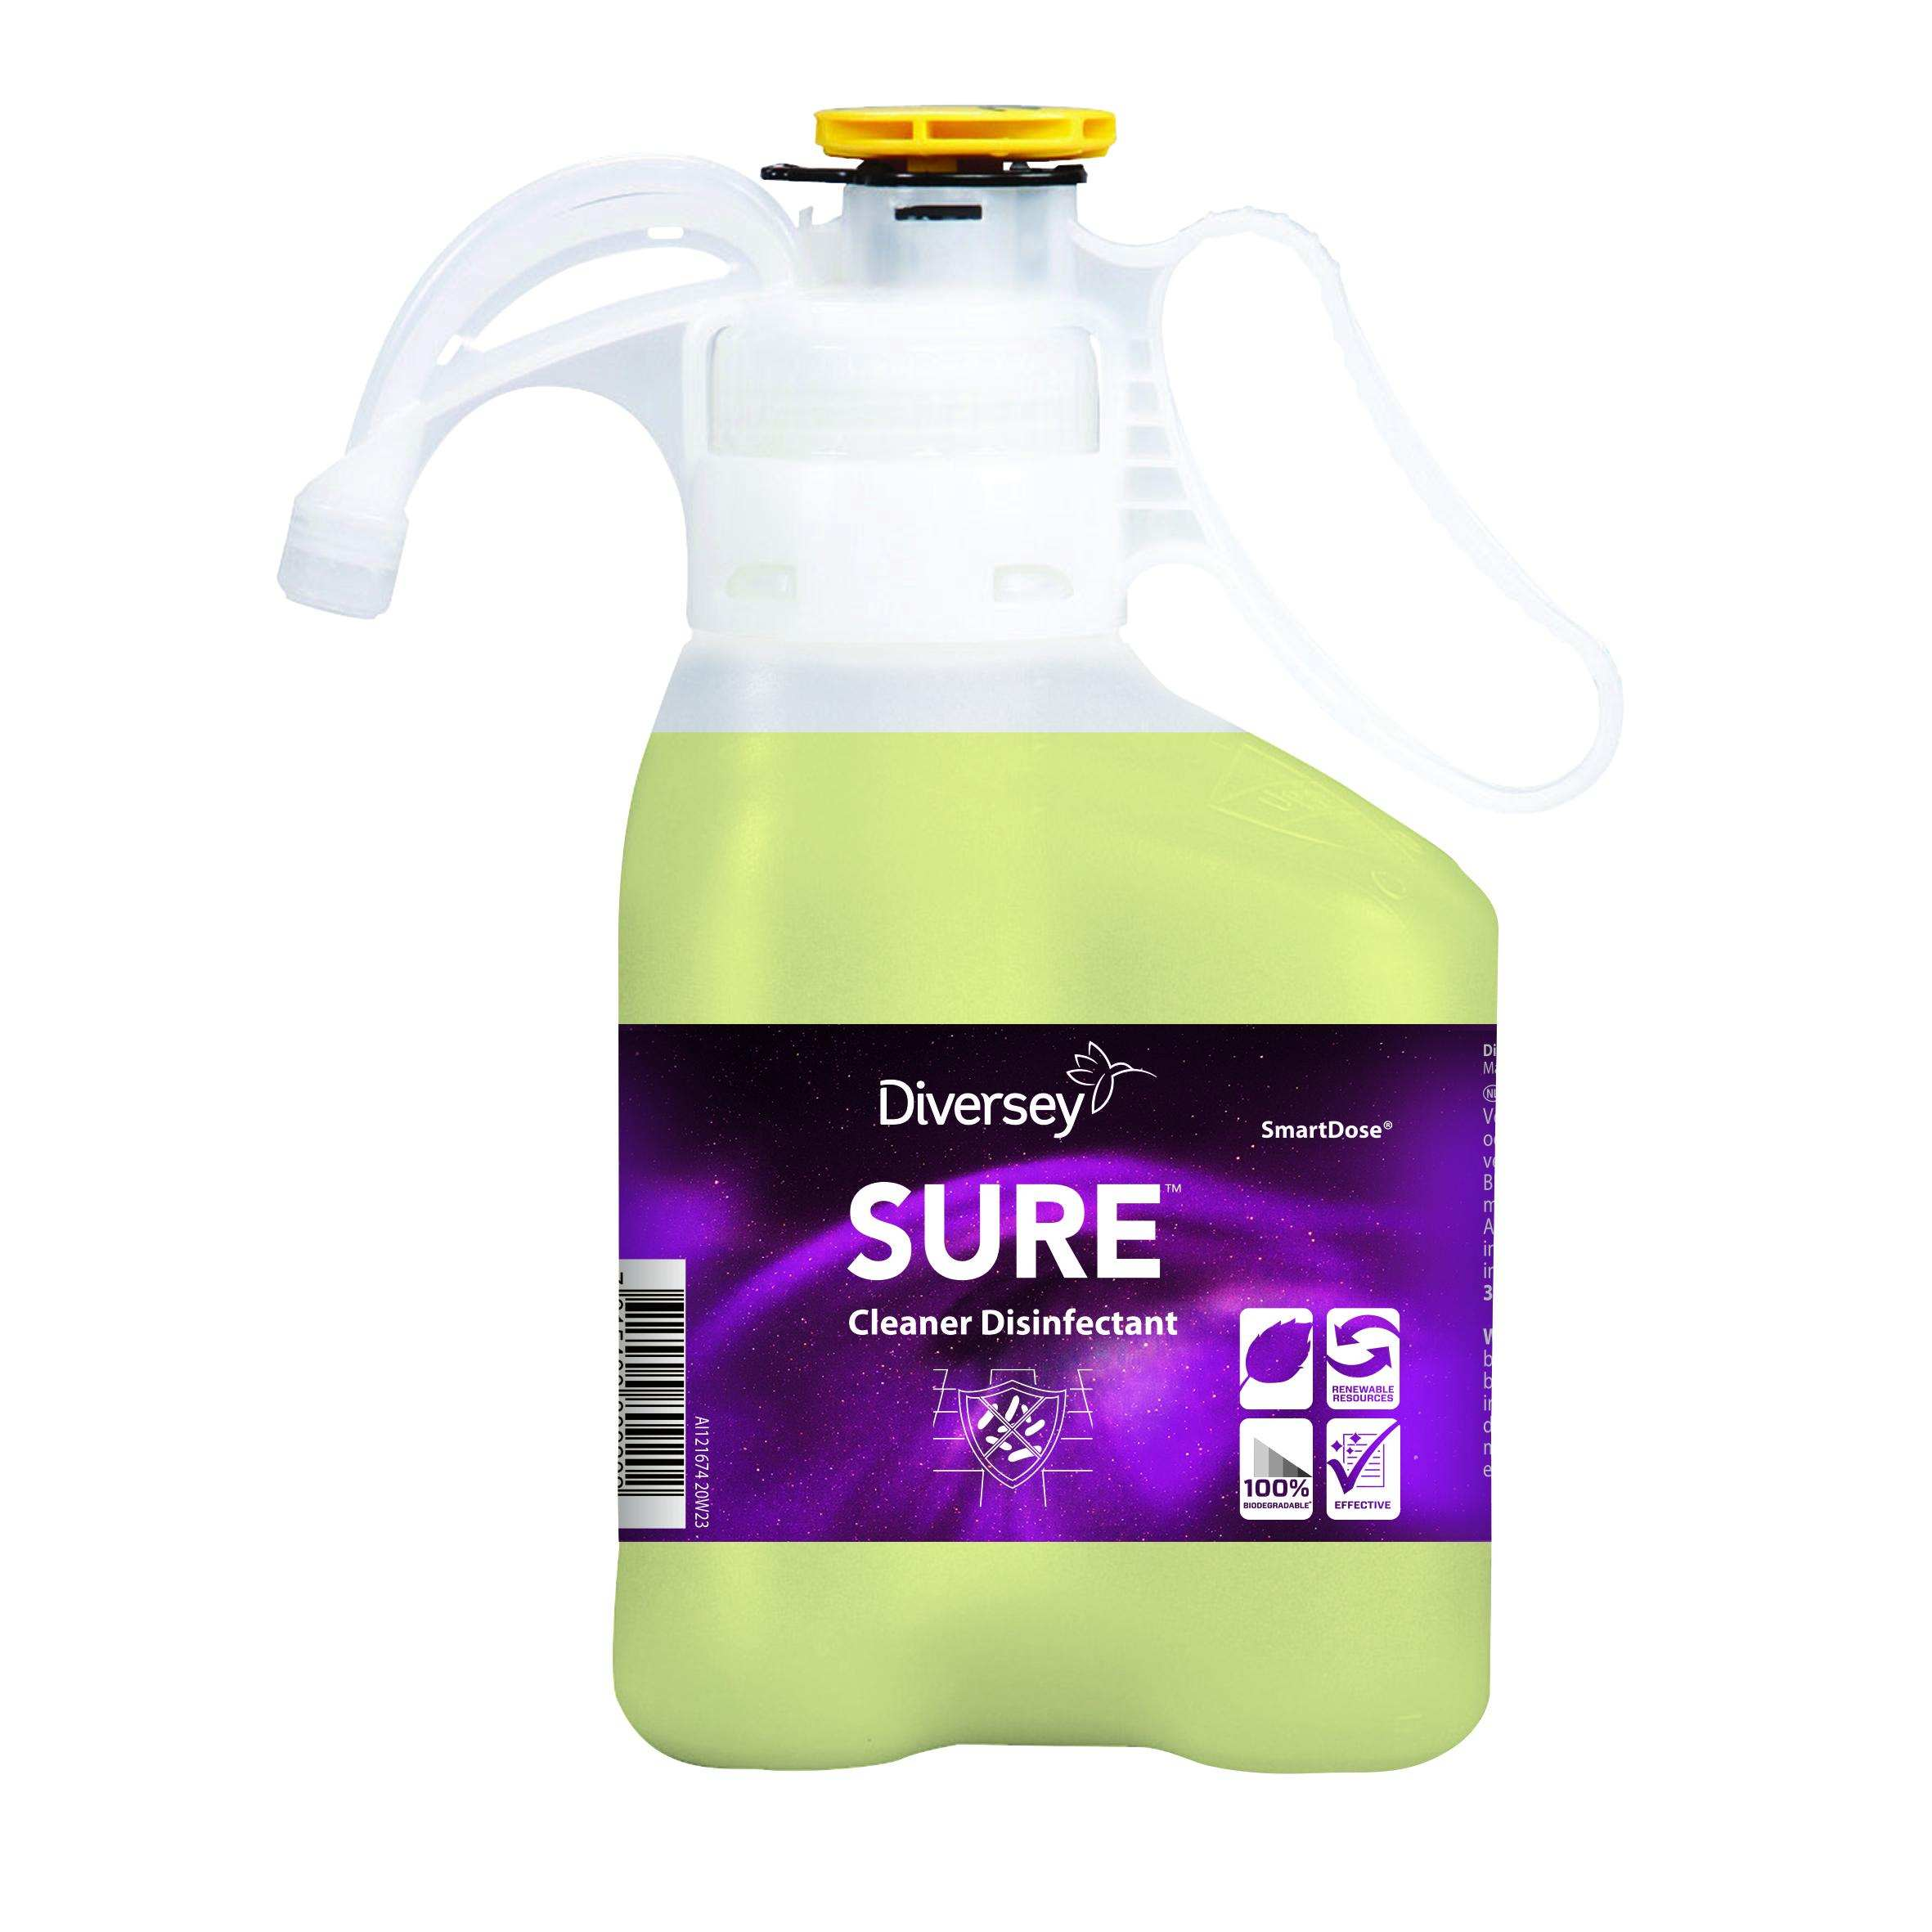 101104405-SURE-Cleaner-Disinfectant-1.4L-NL-CMYK-20x20cm.jpg